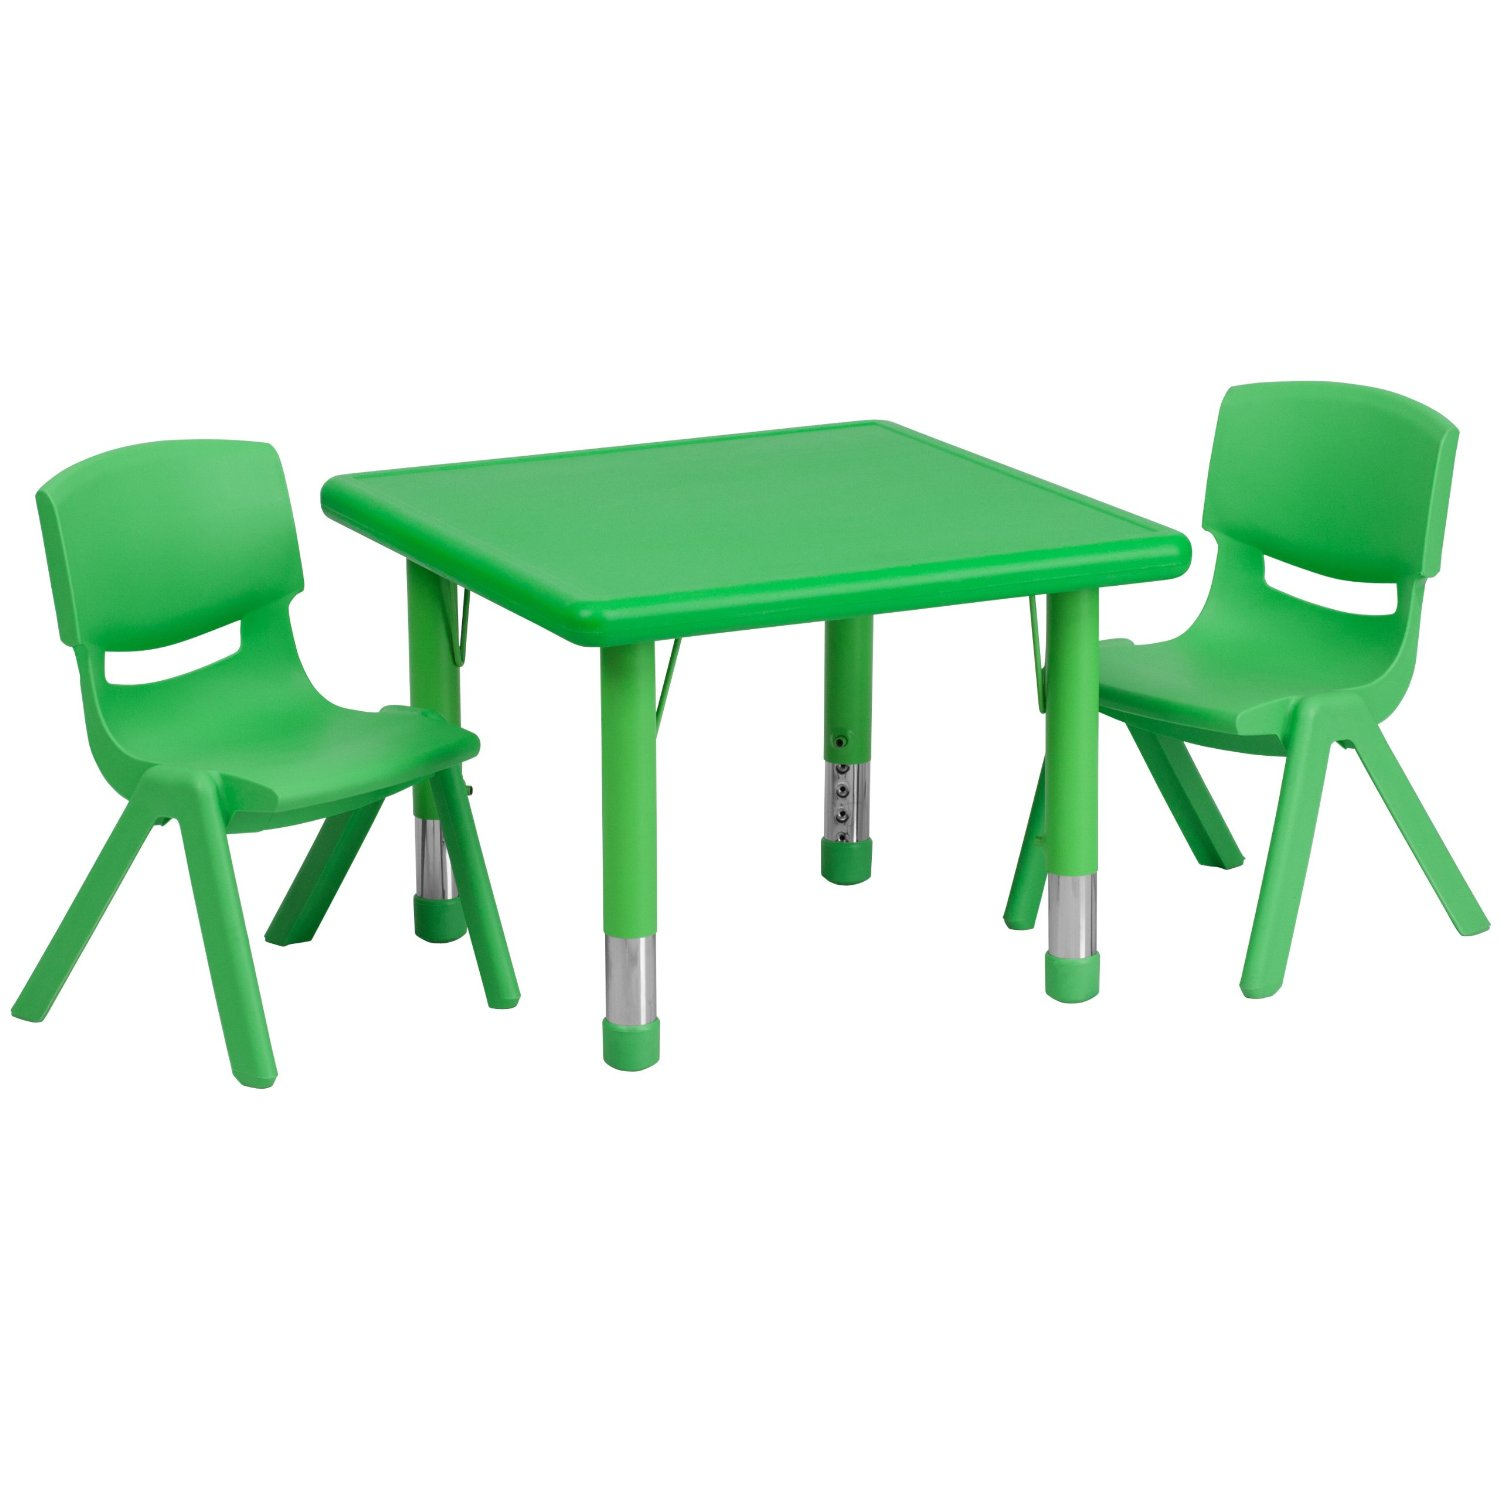 Total fab children 39 s plastic table and chair sets for Table and chair set